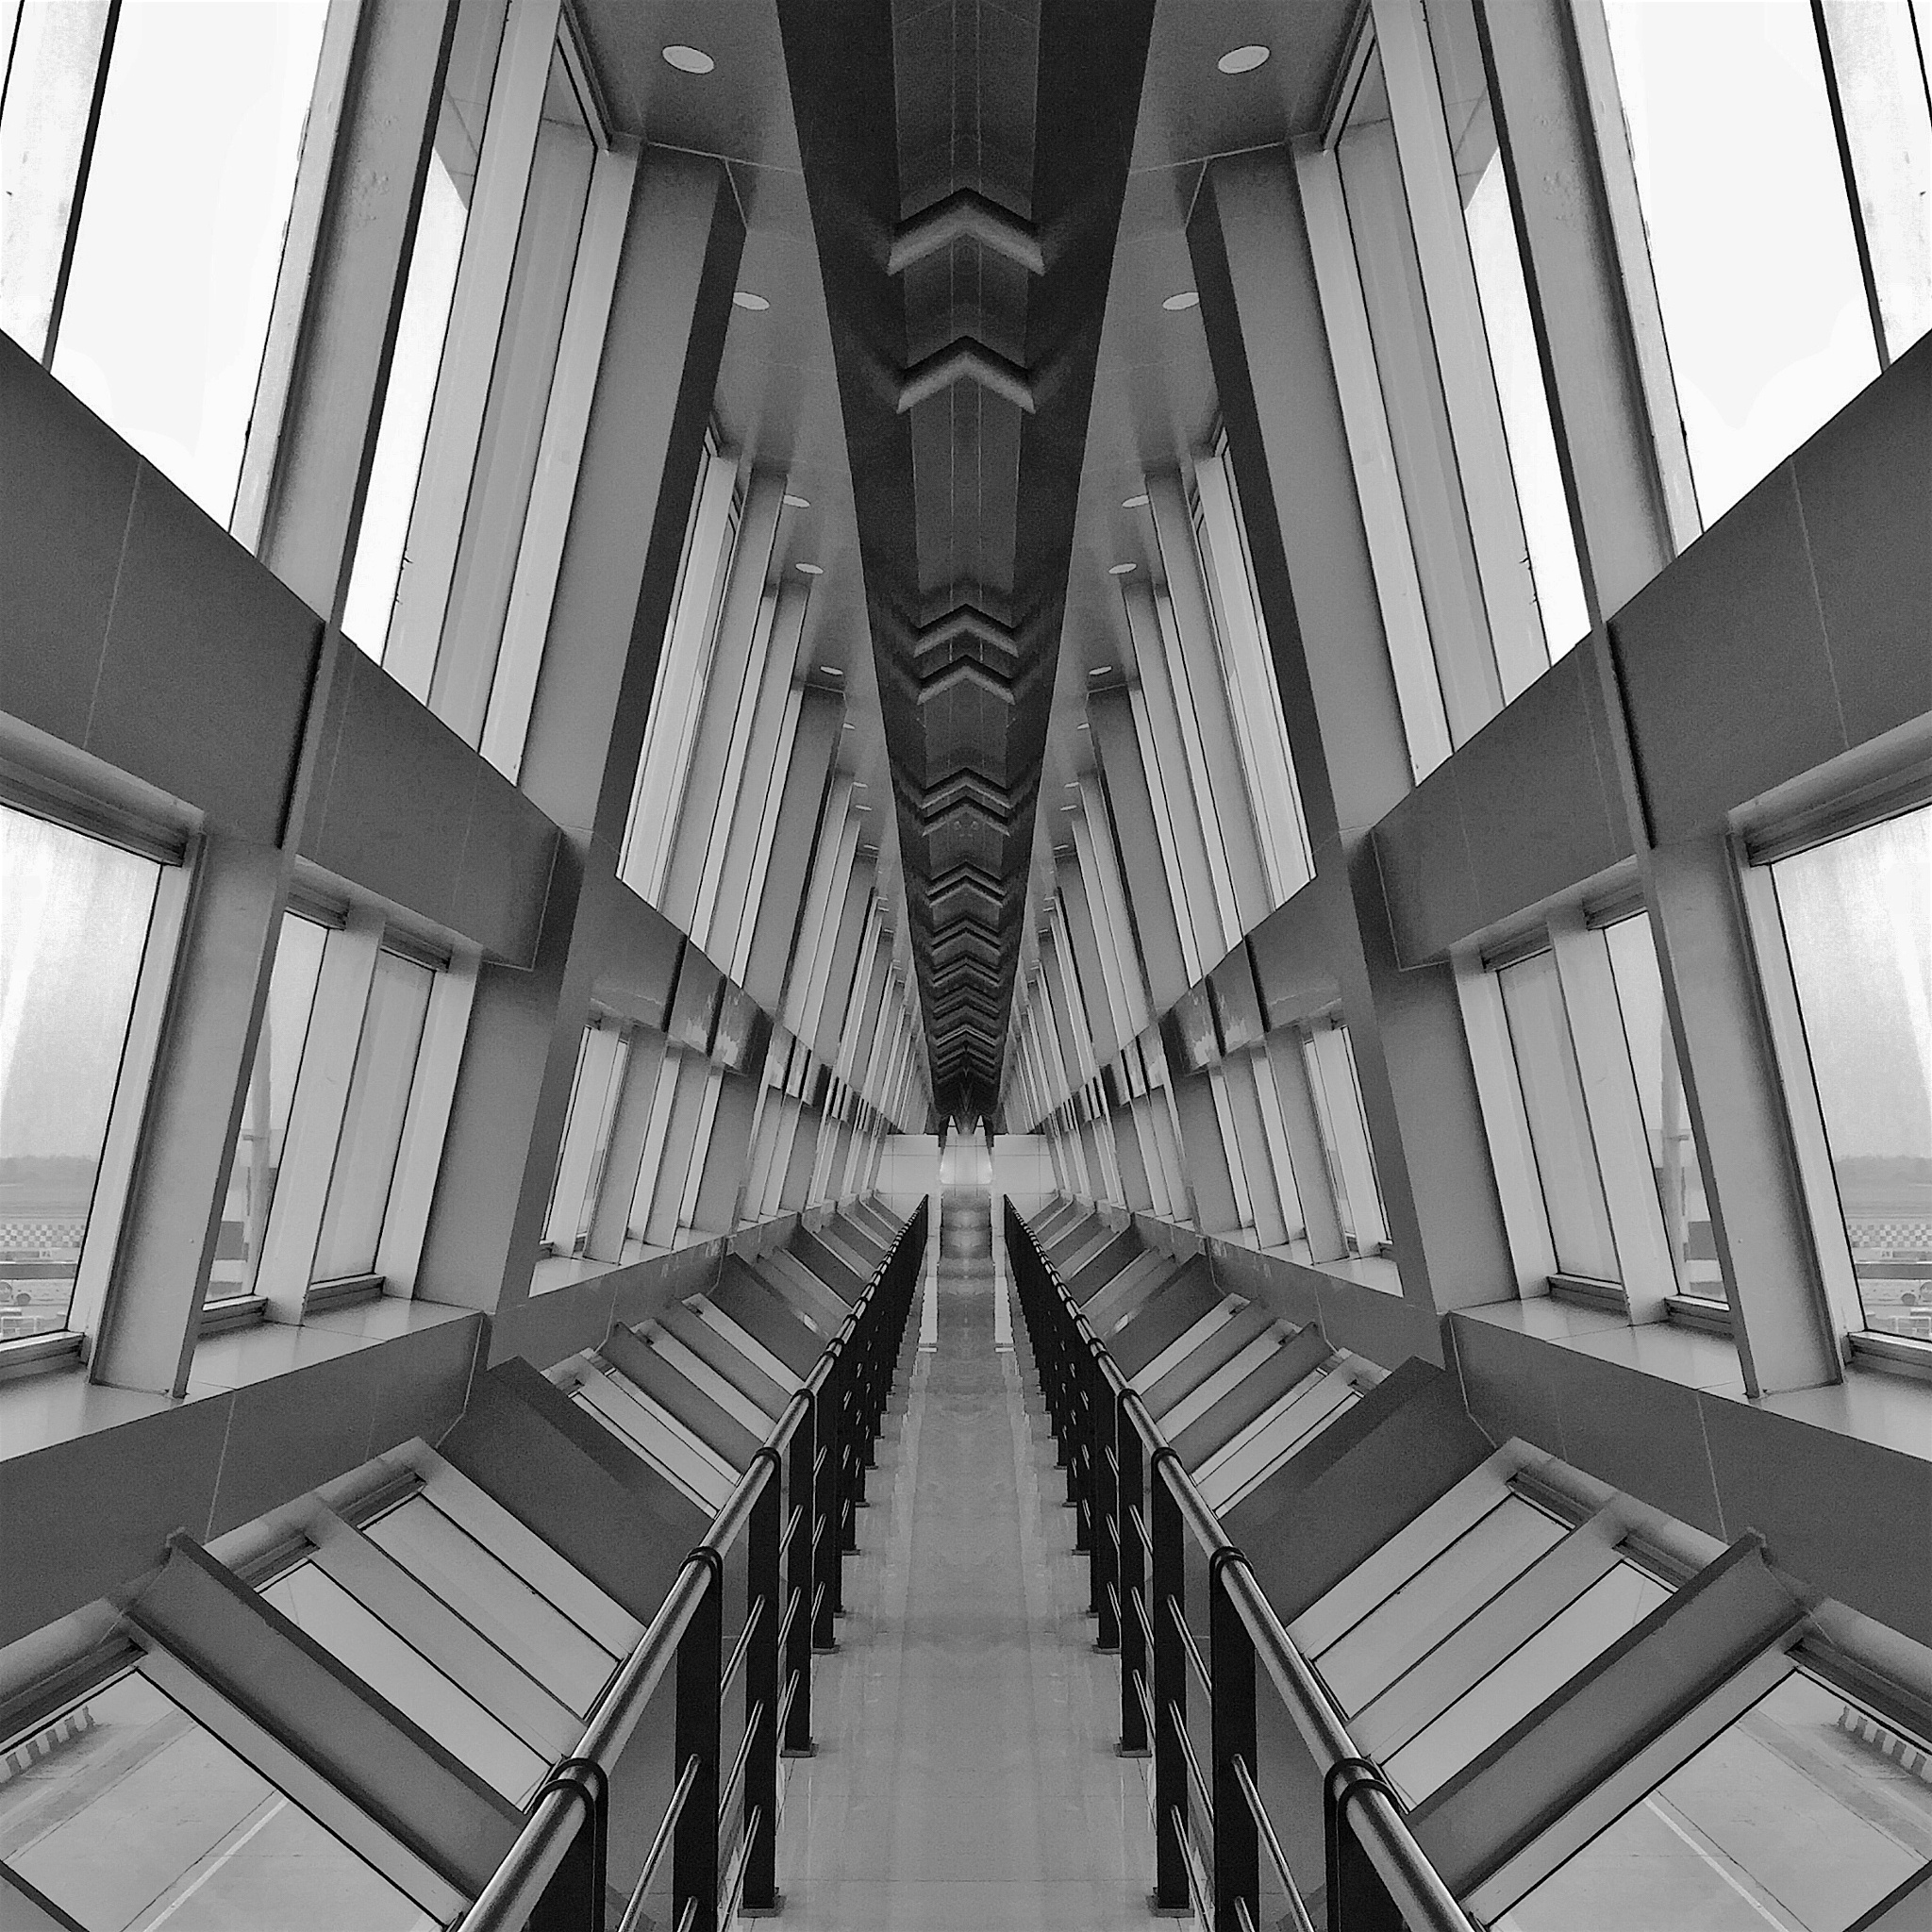 Symmetry addicted by Danny Rustandi